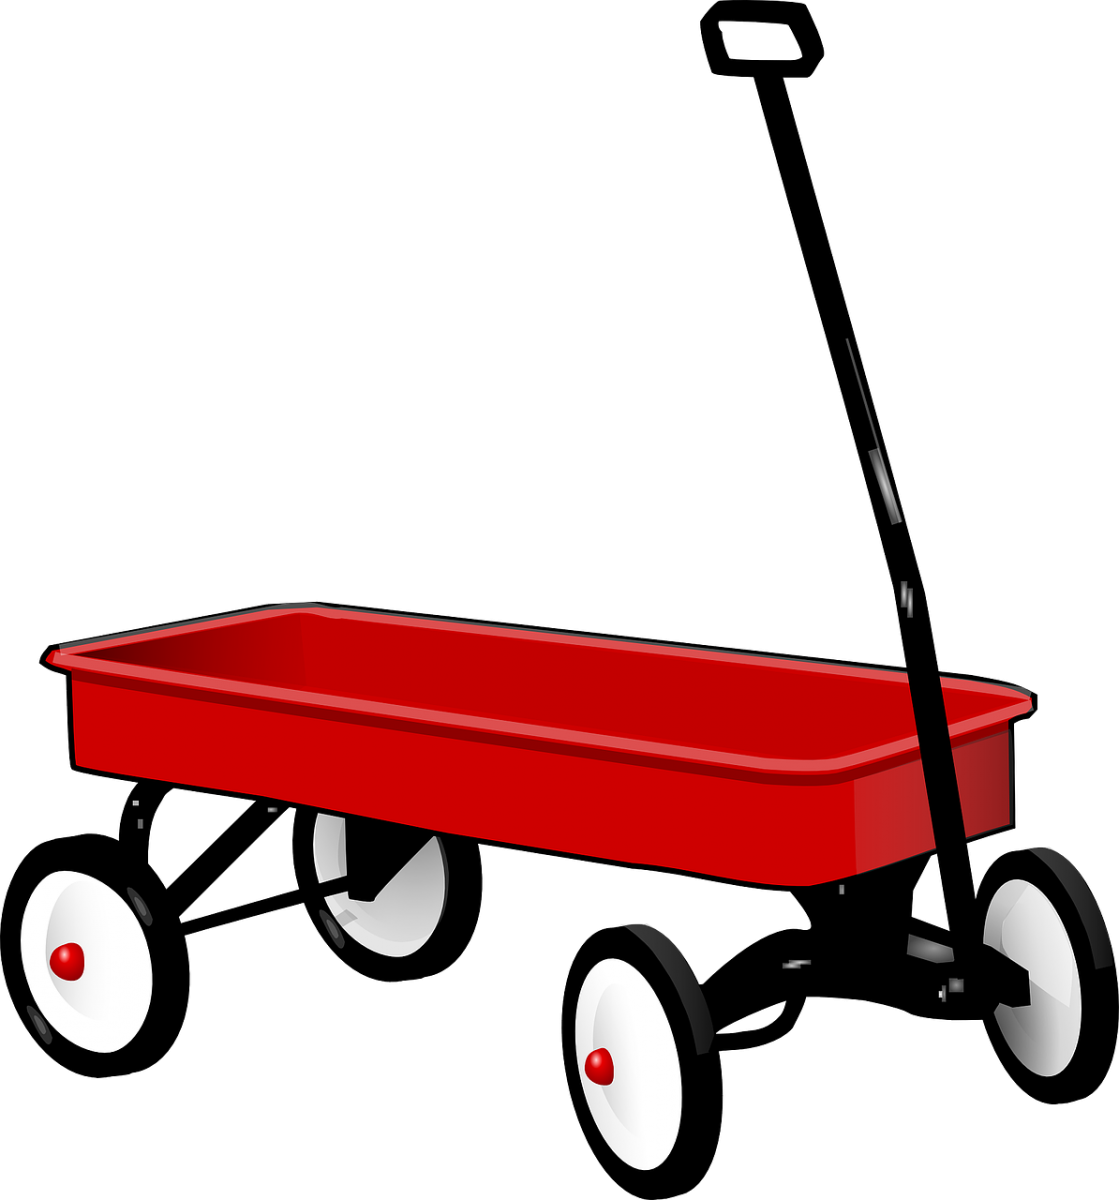 Red wagon png. The little theory of